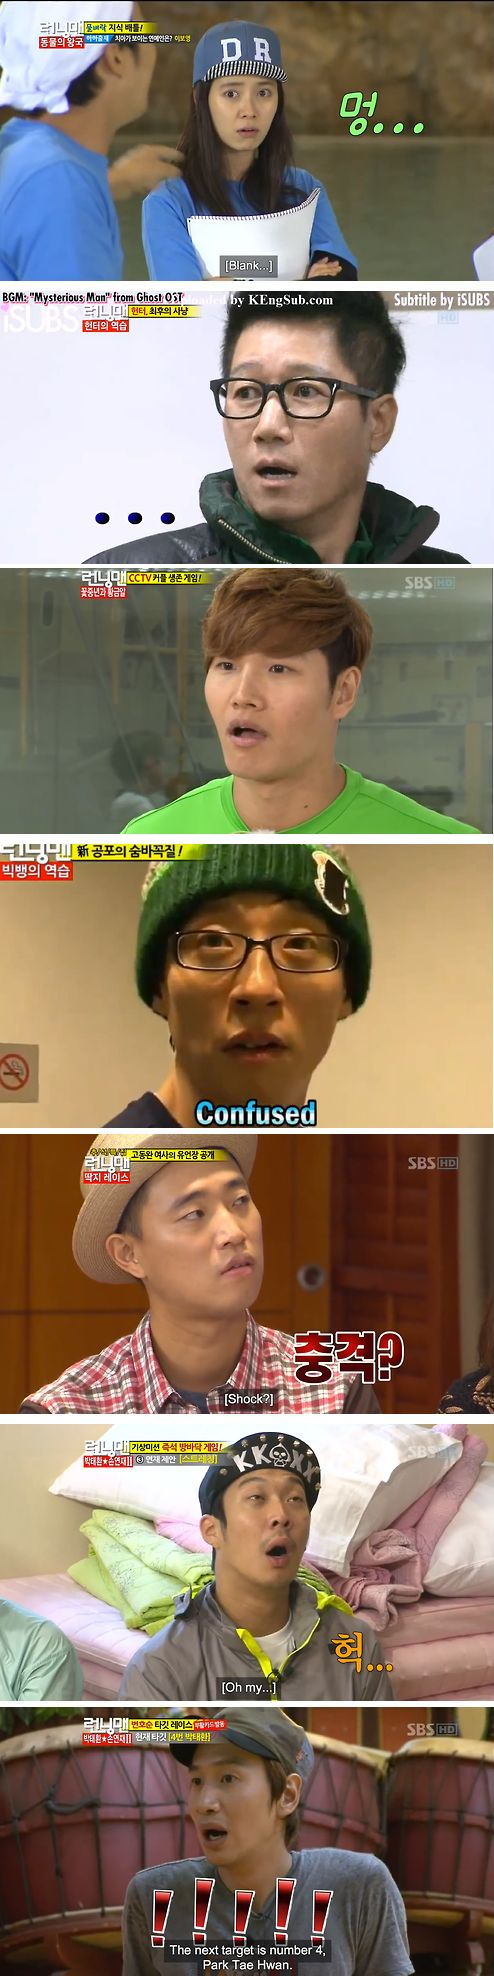 my favourite faces #runningman #blank #confused